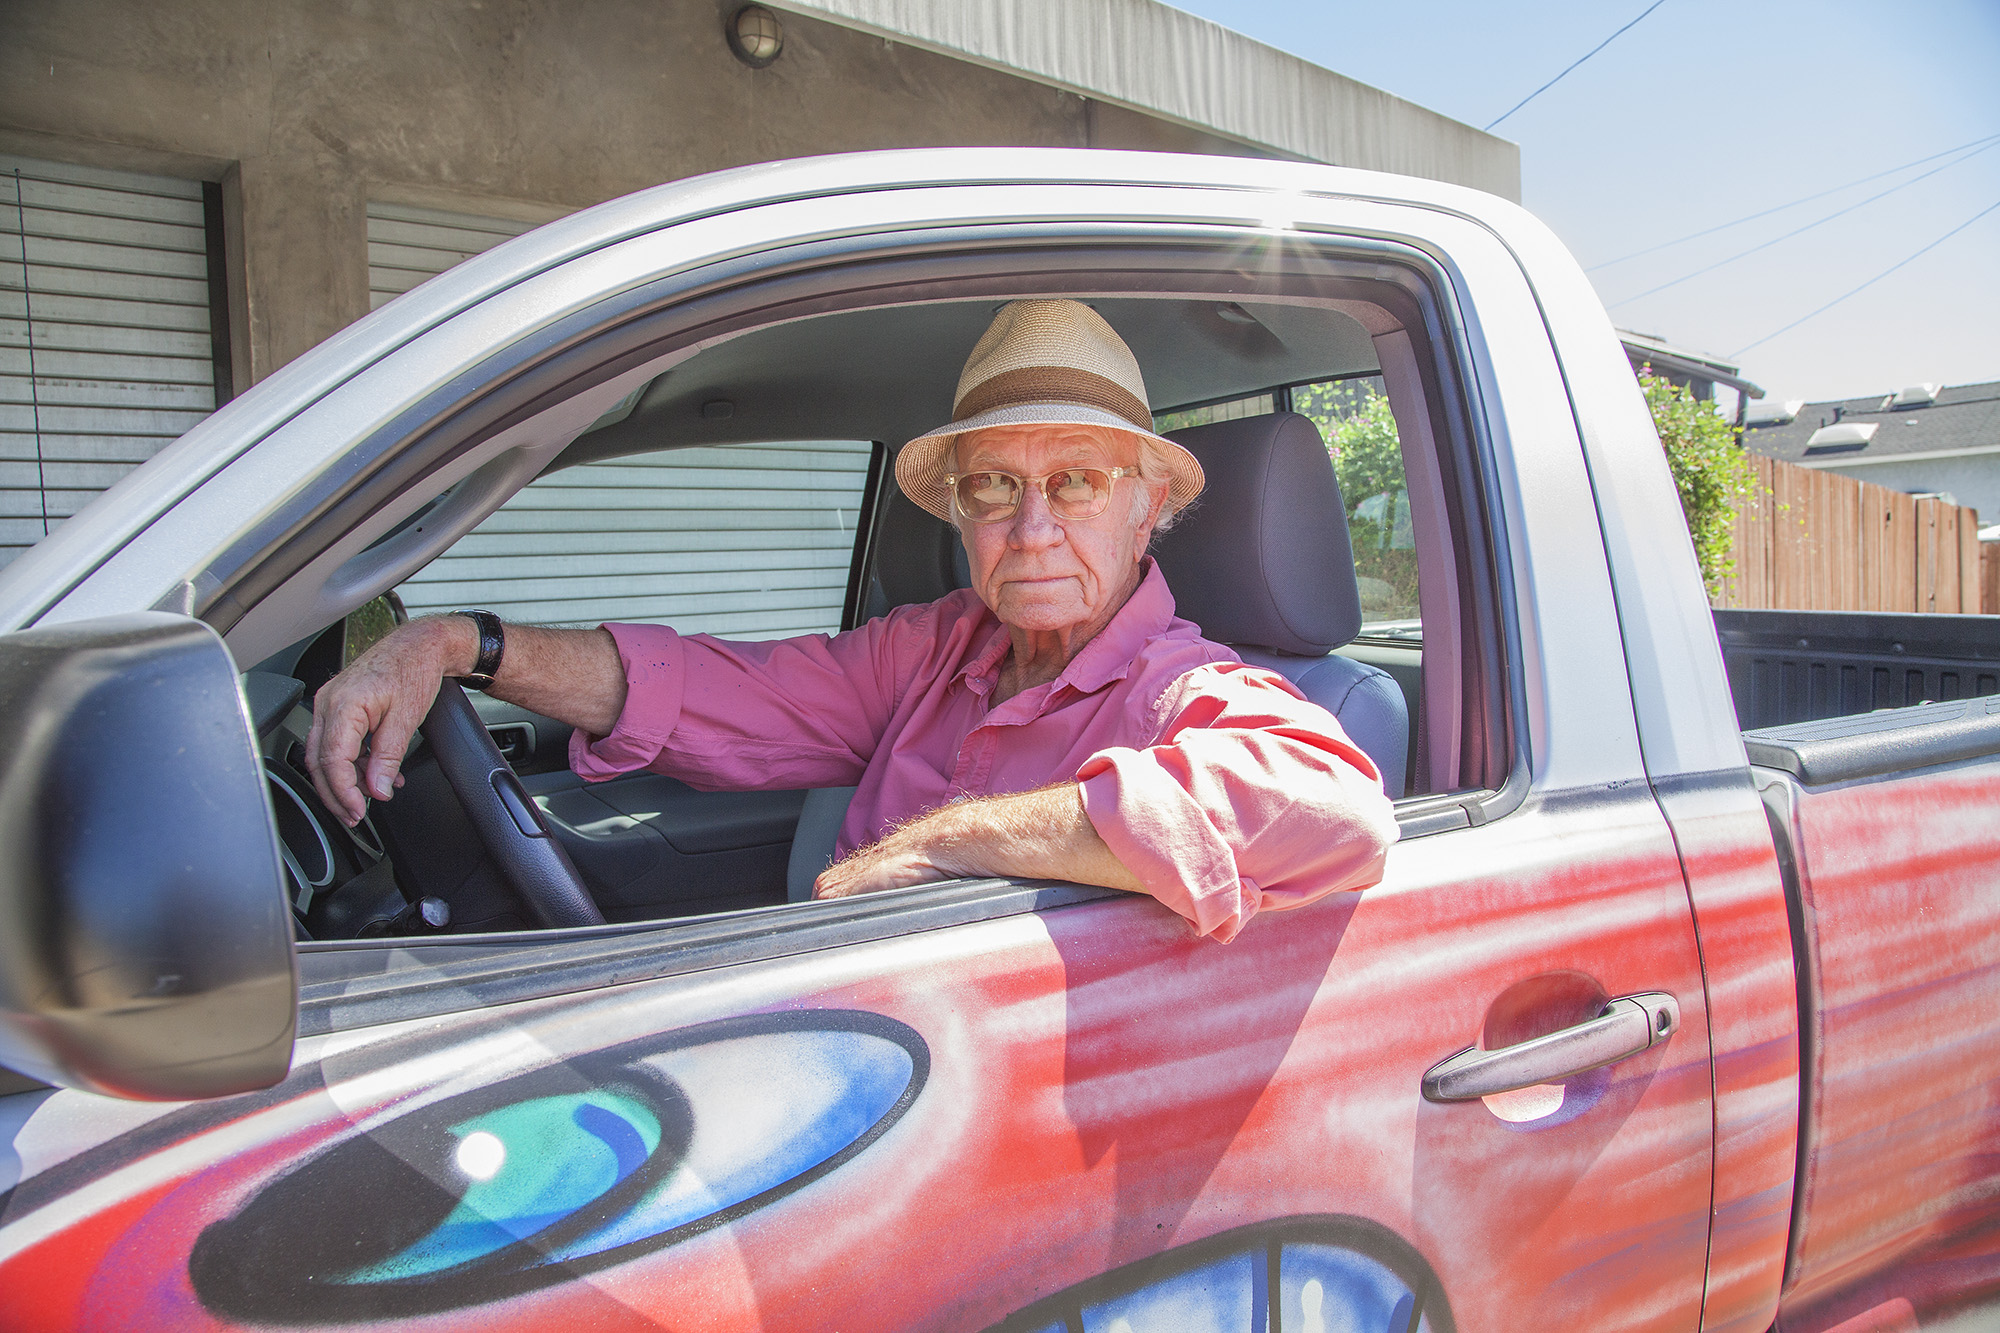 Joe in pick up truck painted by Kenny Scharf (2015)